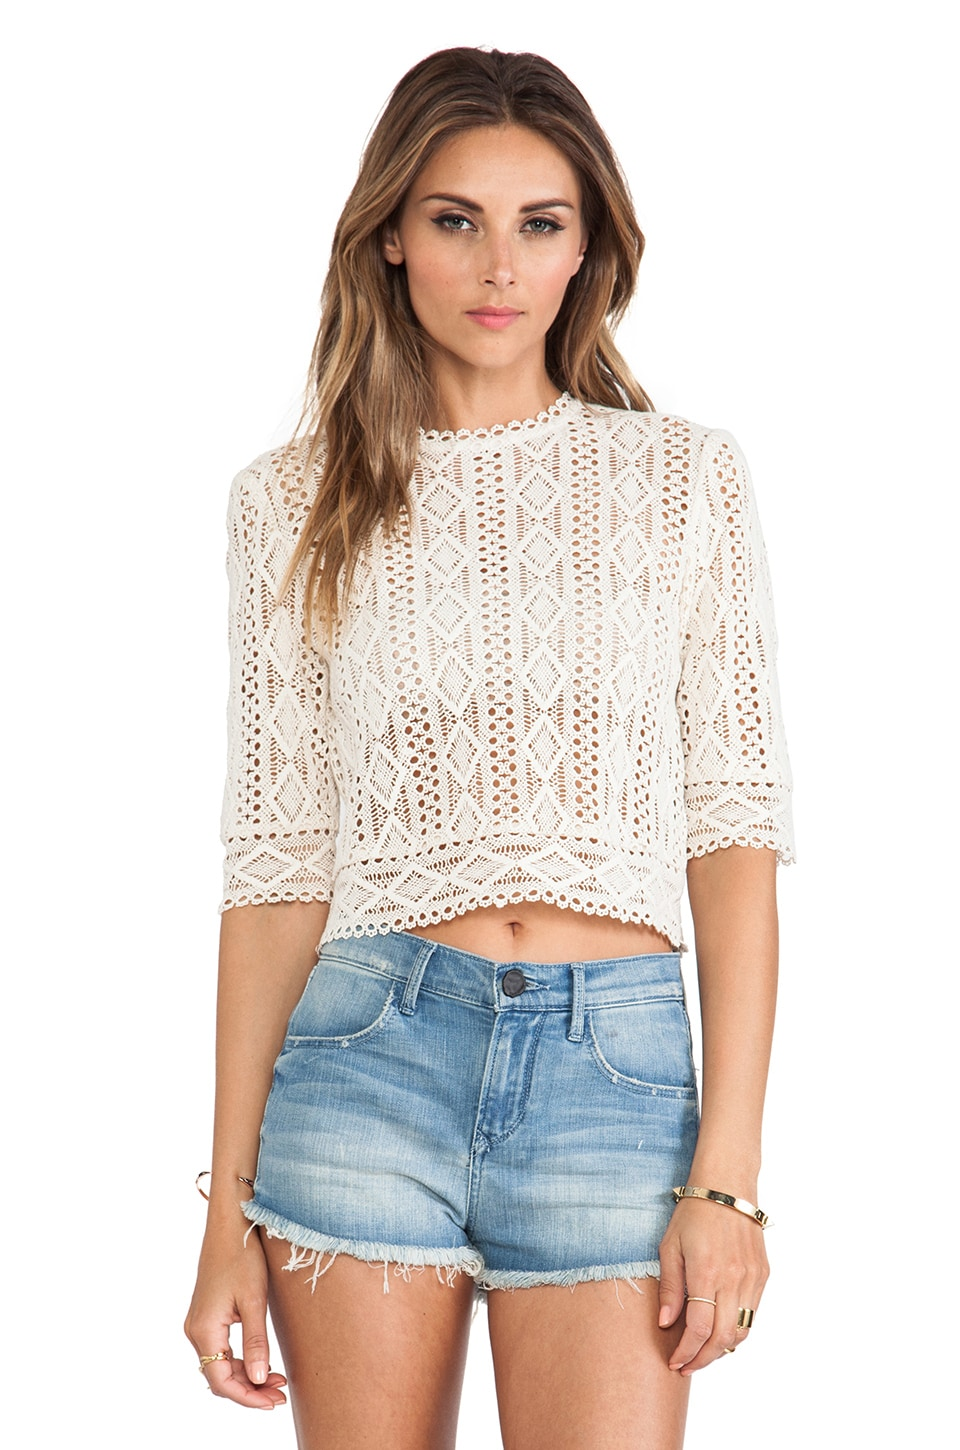 Dolce Vita Elizaveta Top in Sand